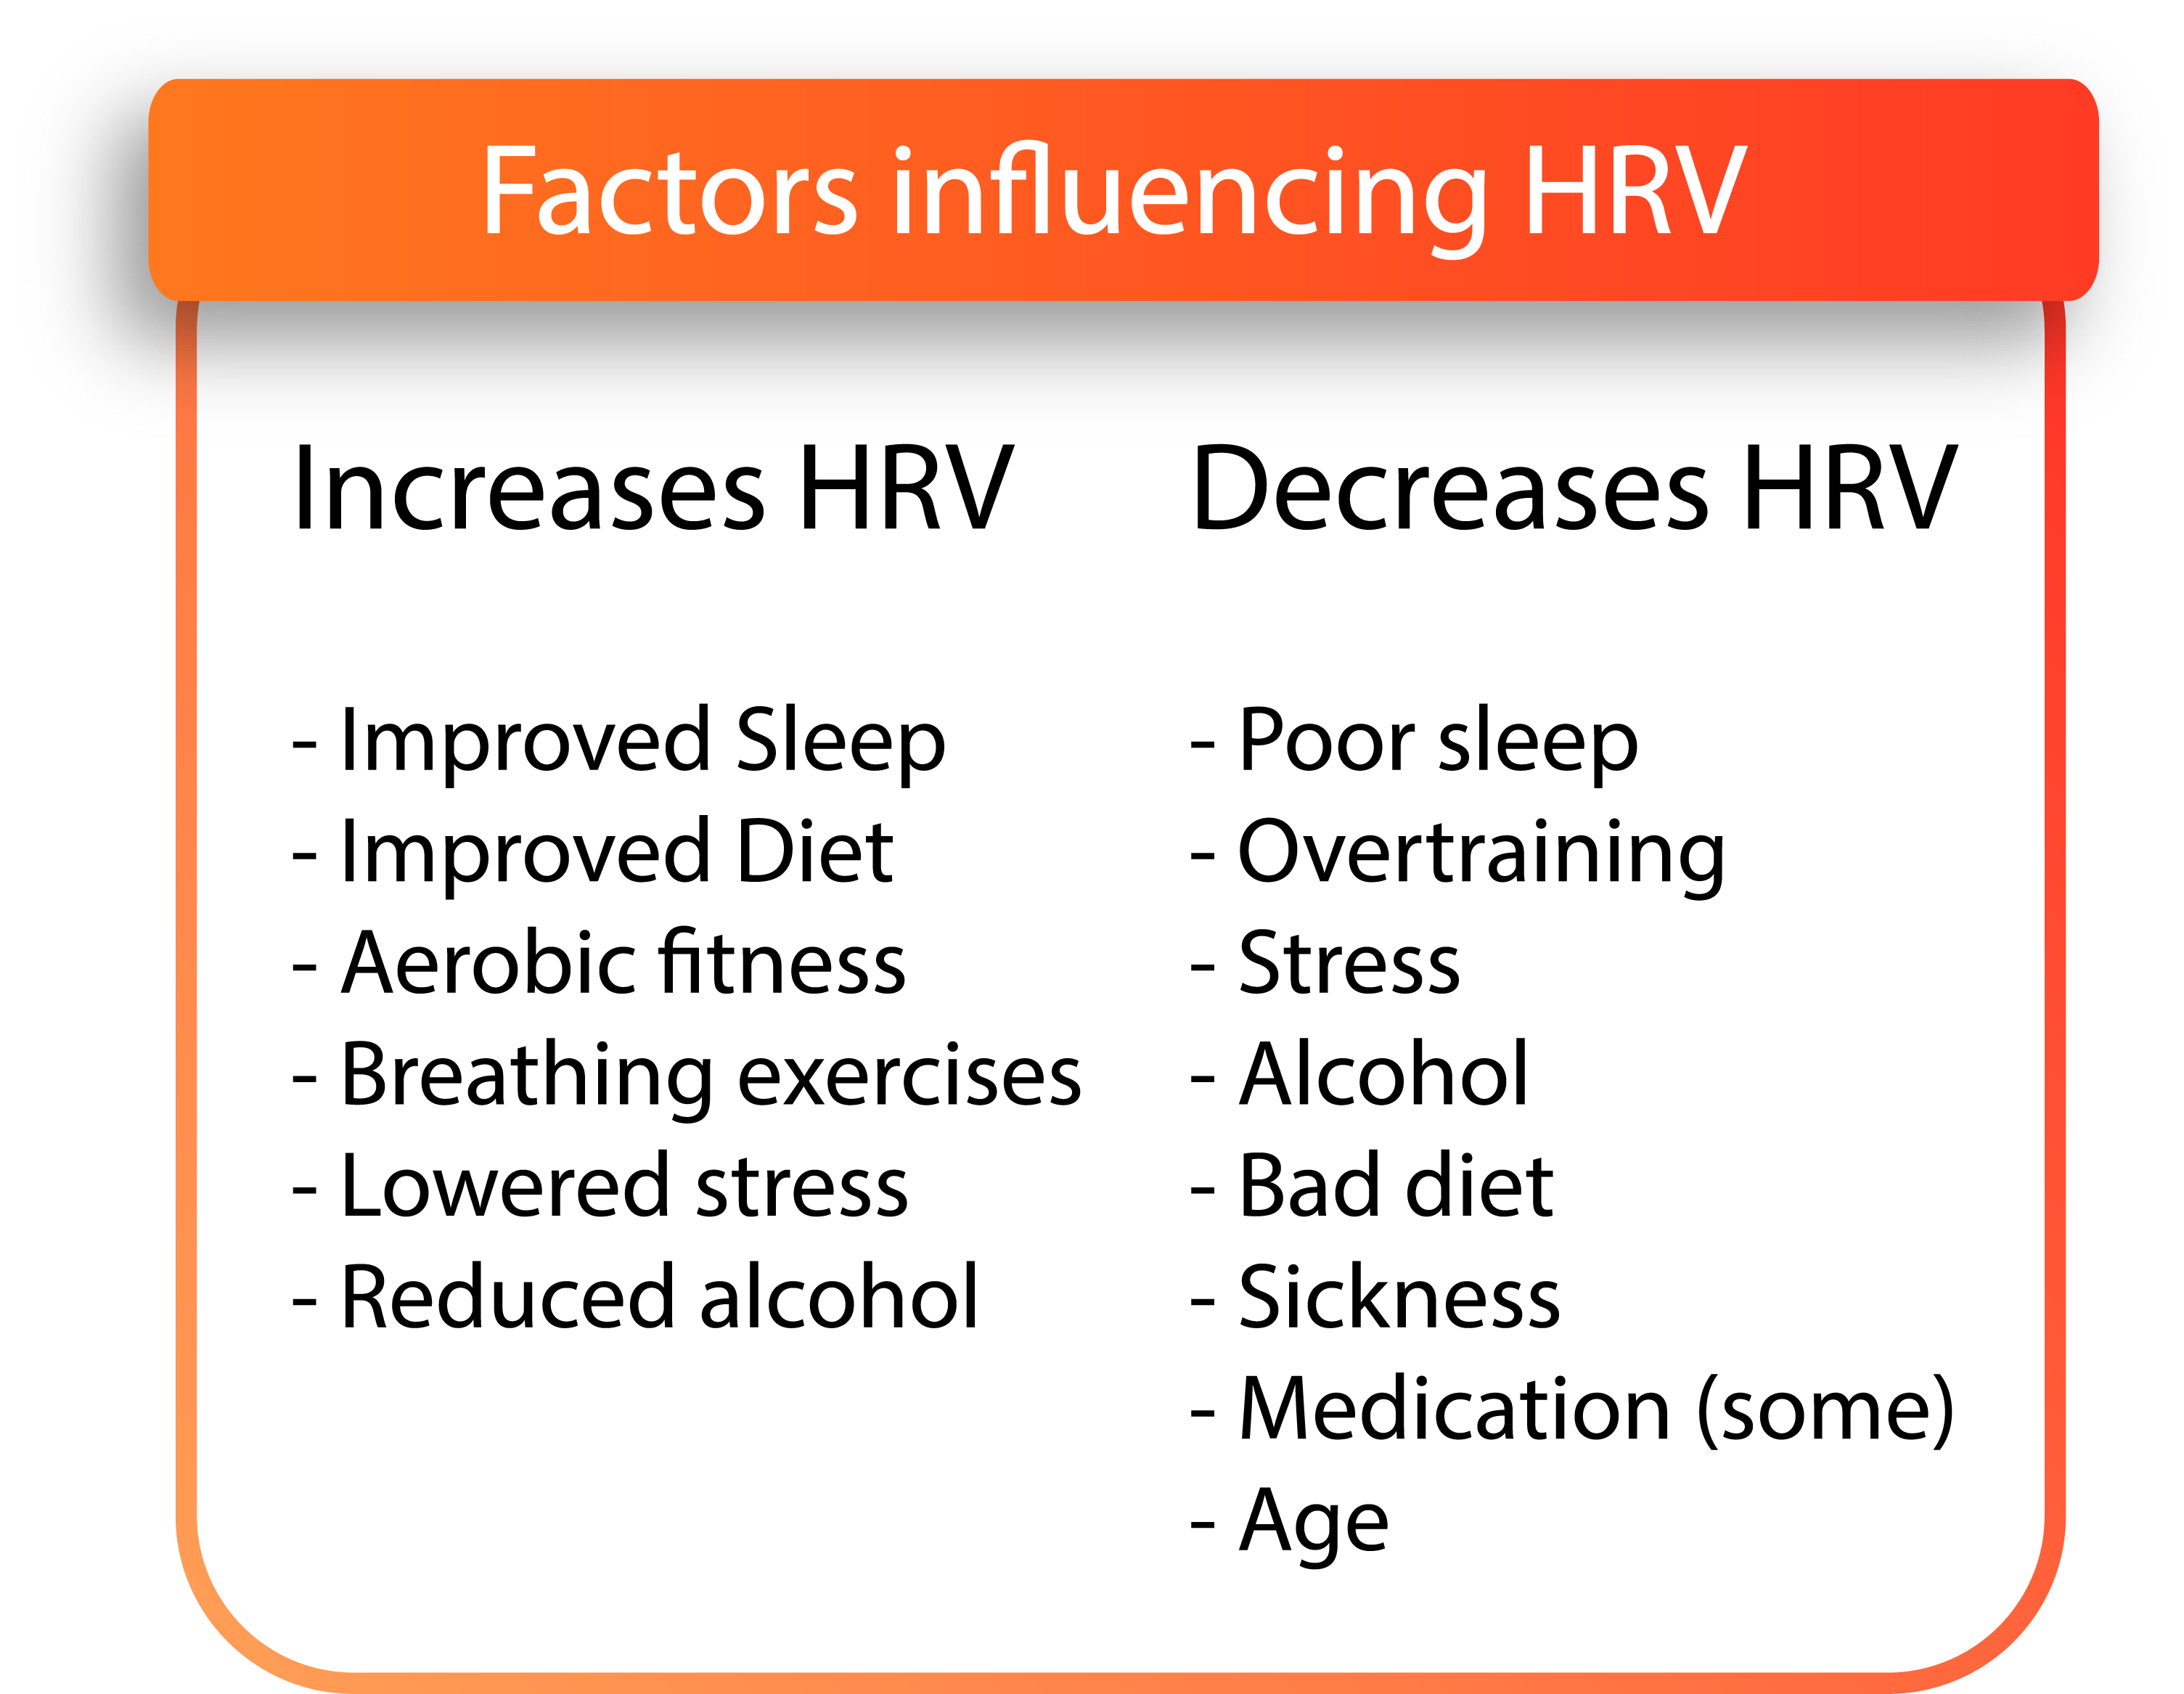 Circular Factors Influencing HRV